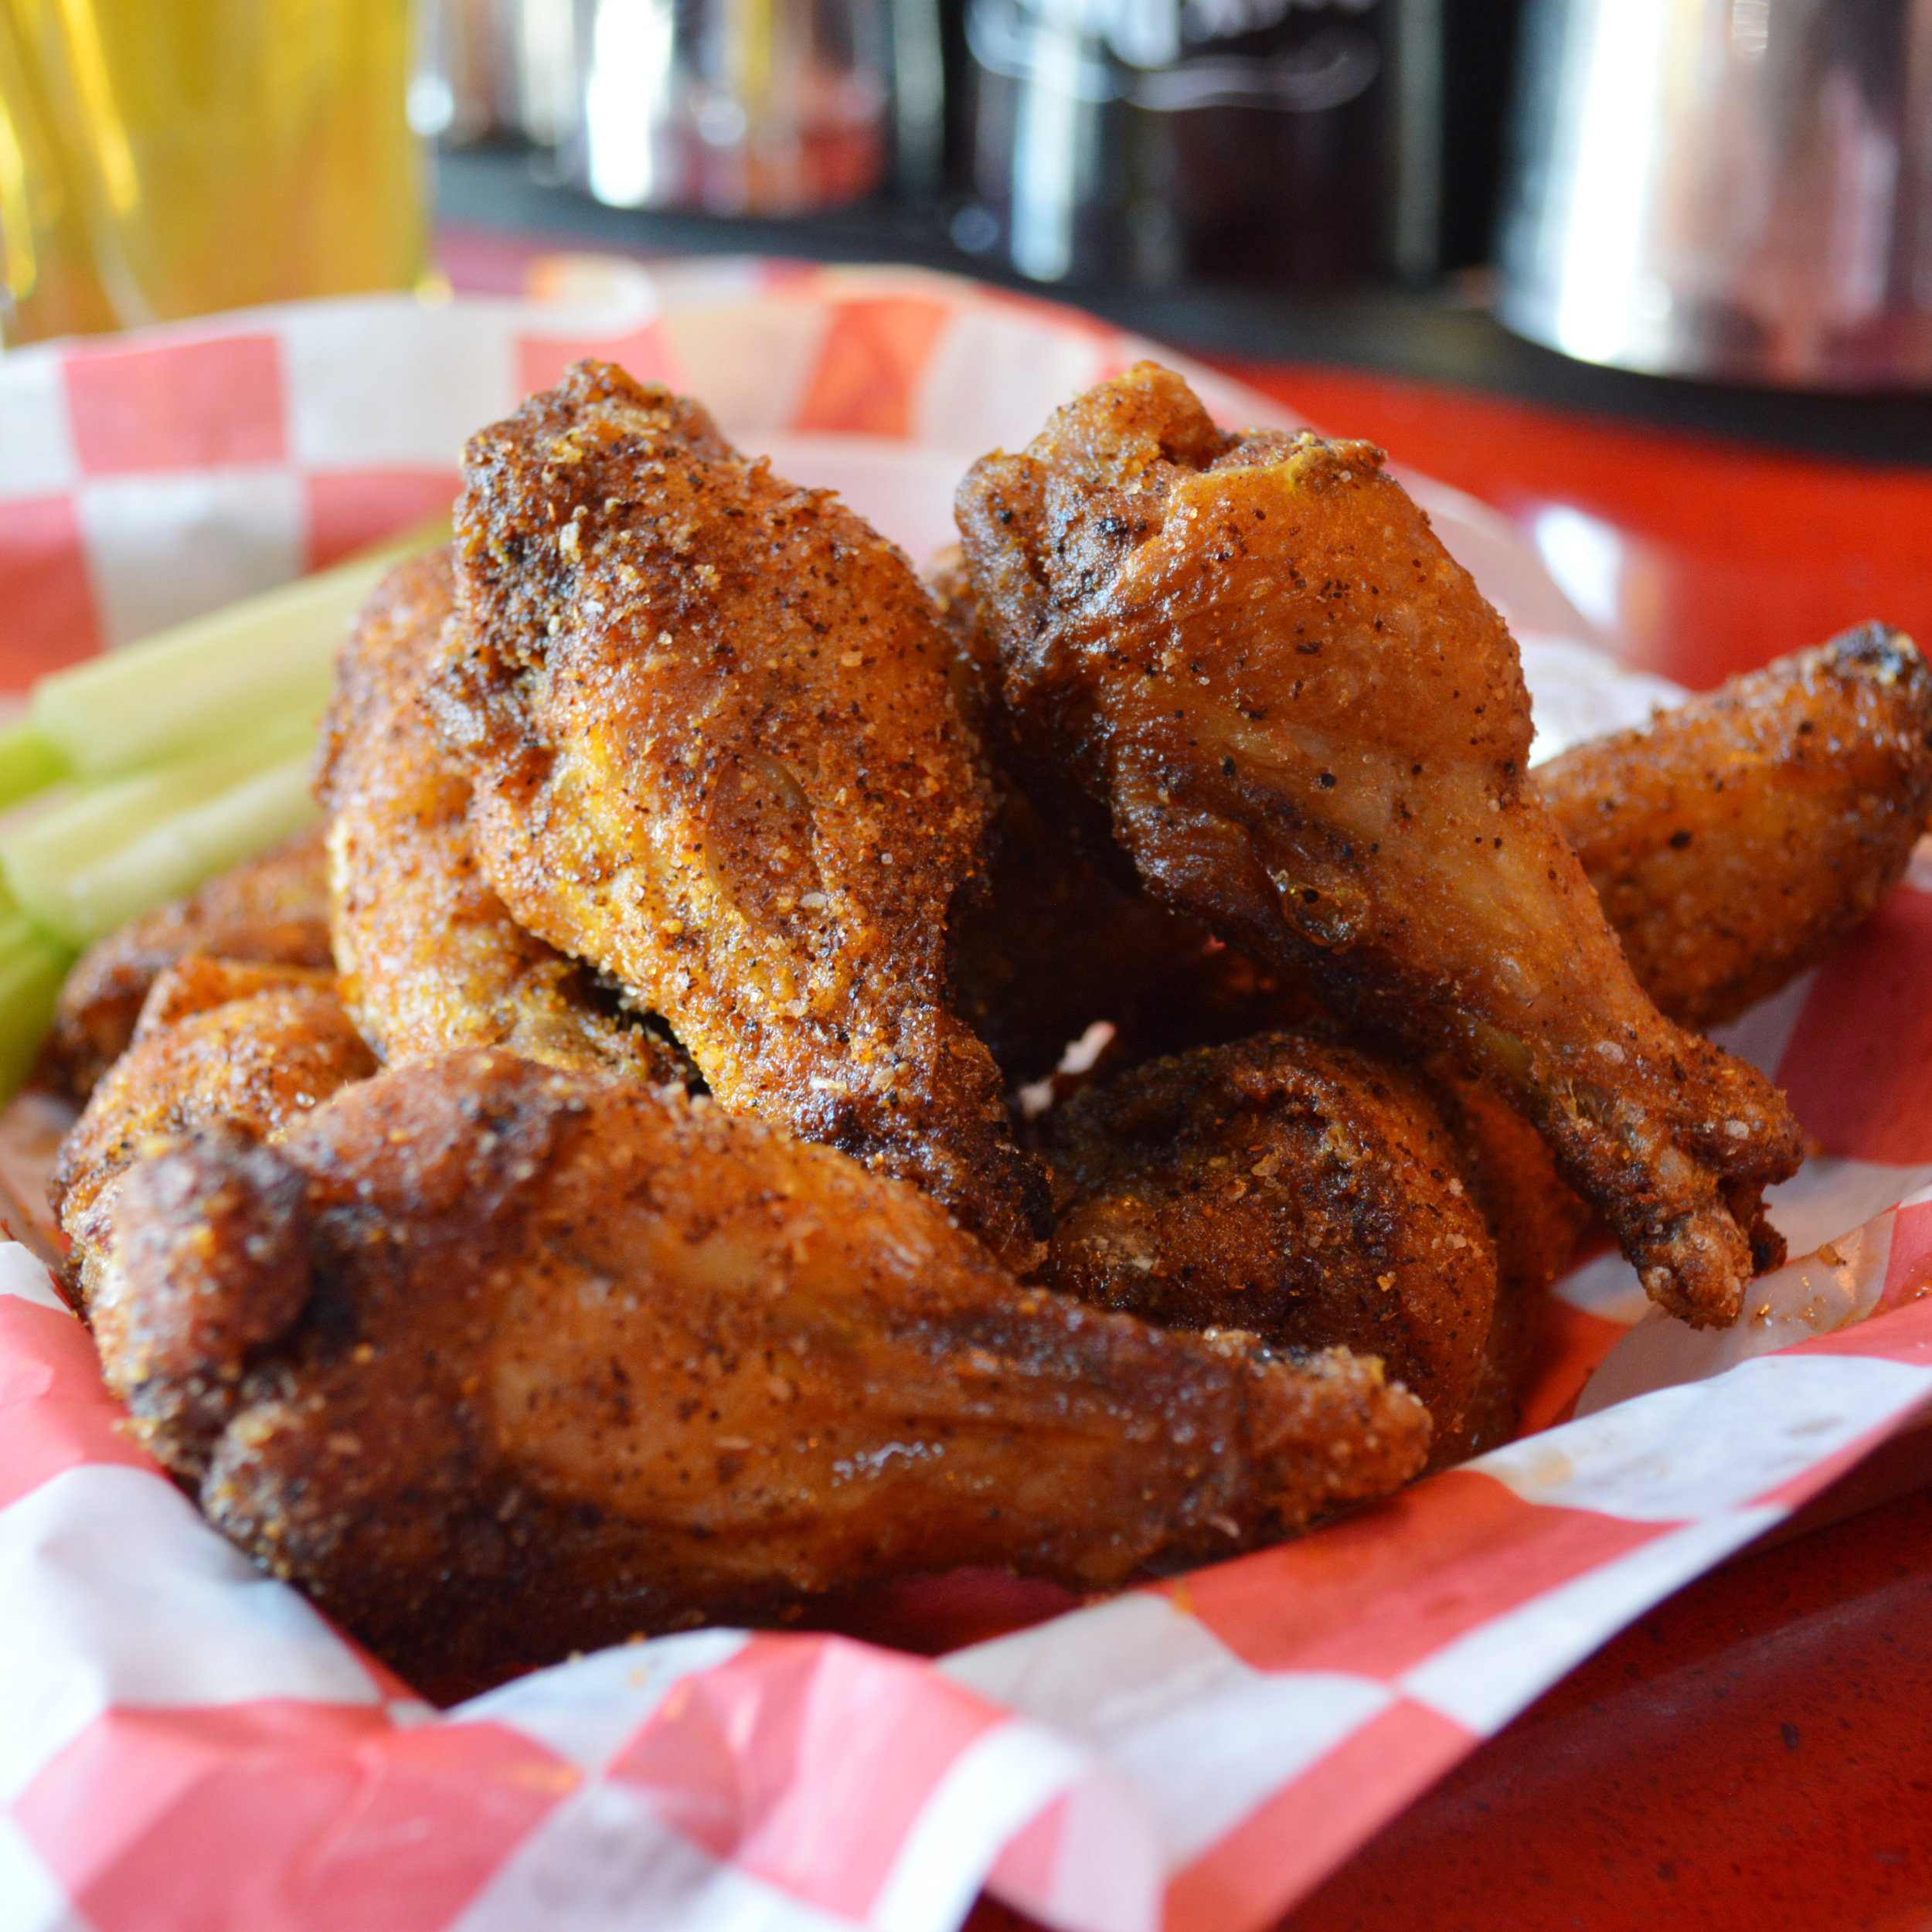 pjs-pub-chickenwings.jpg